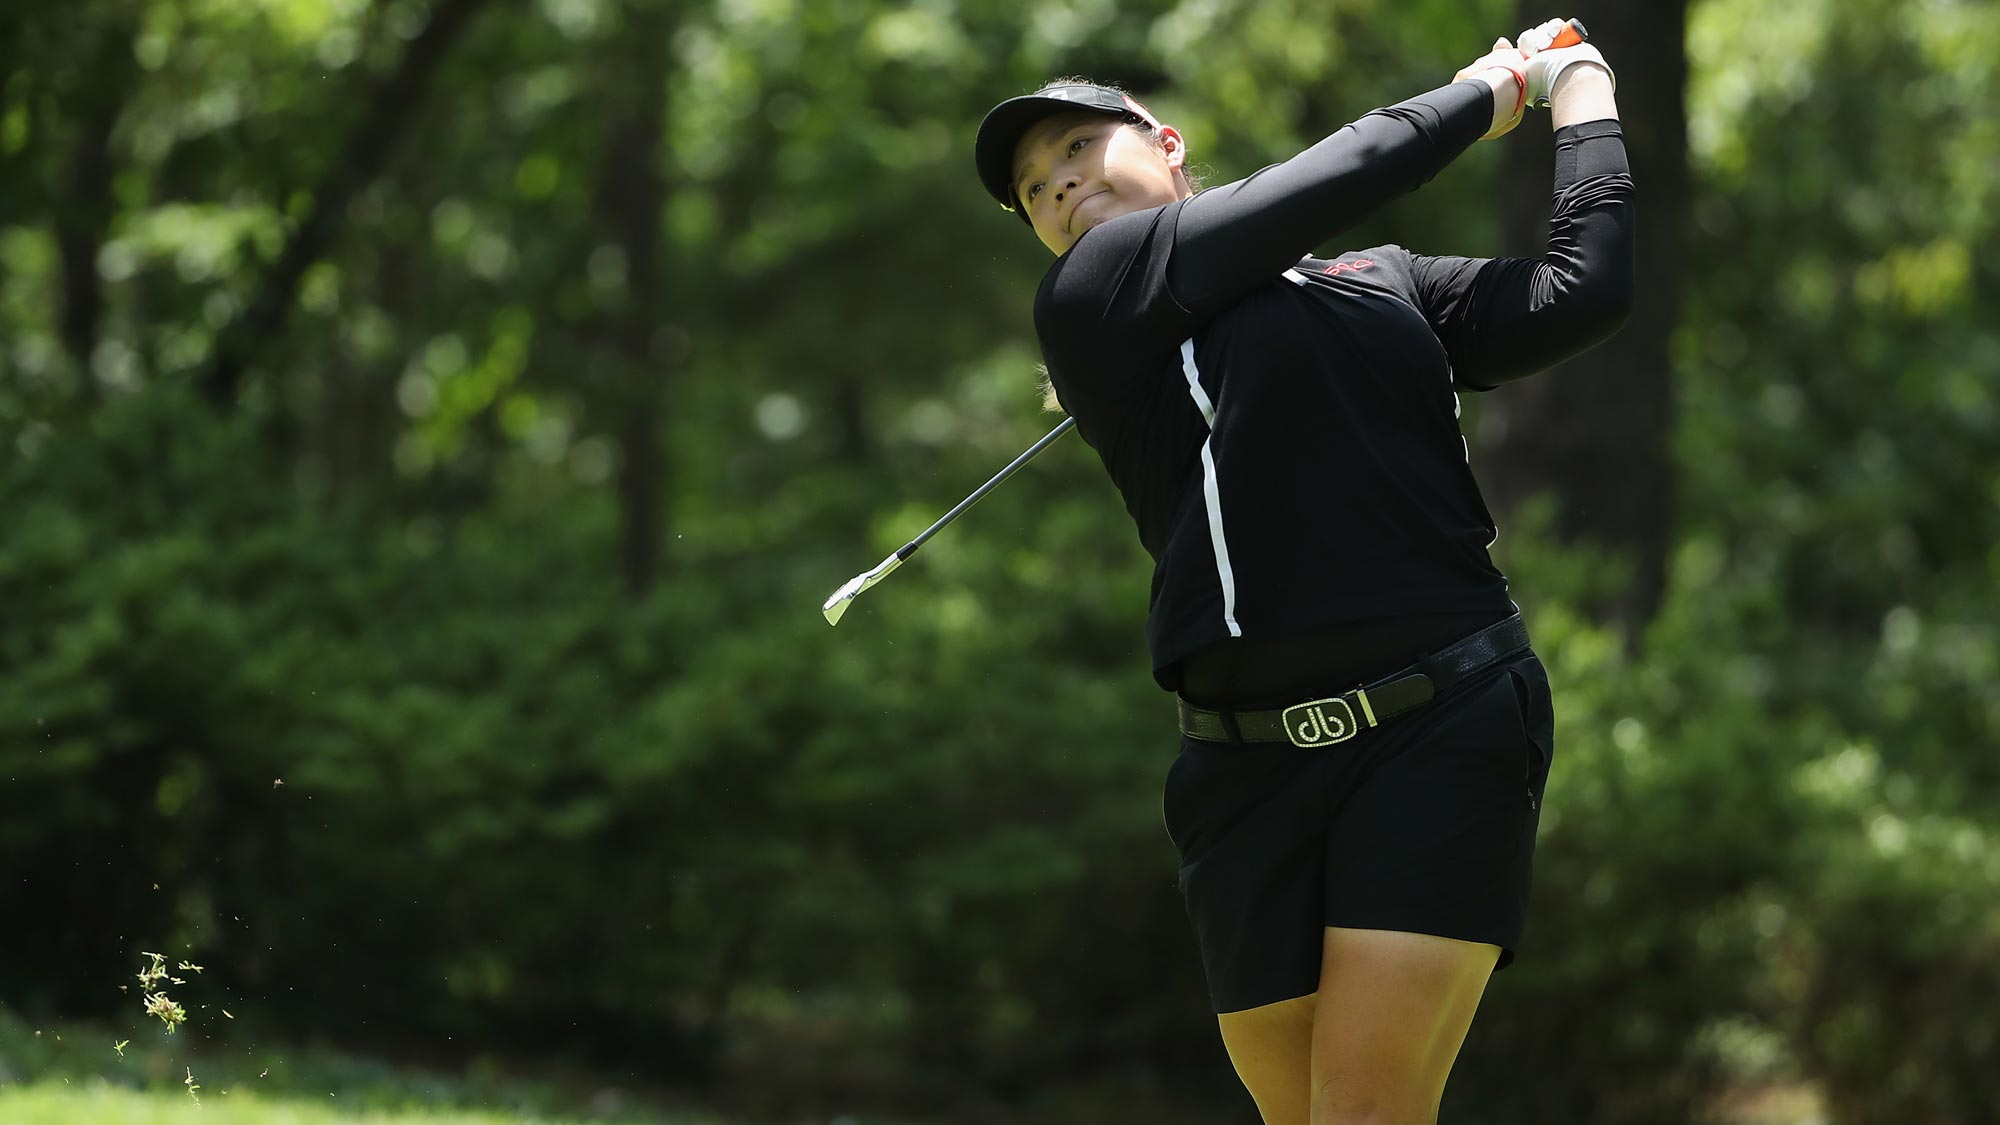 Ariya Jutanugarn of Thailand plays a tee shot on the second hole during the final round of the 2018 U.S. Women's Open